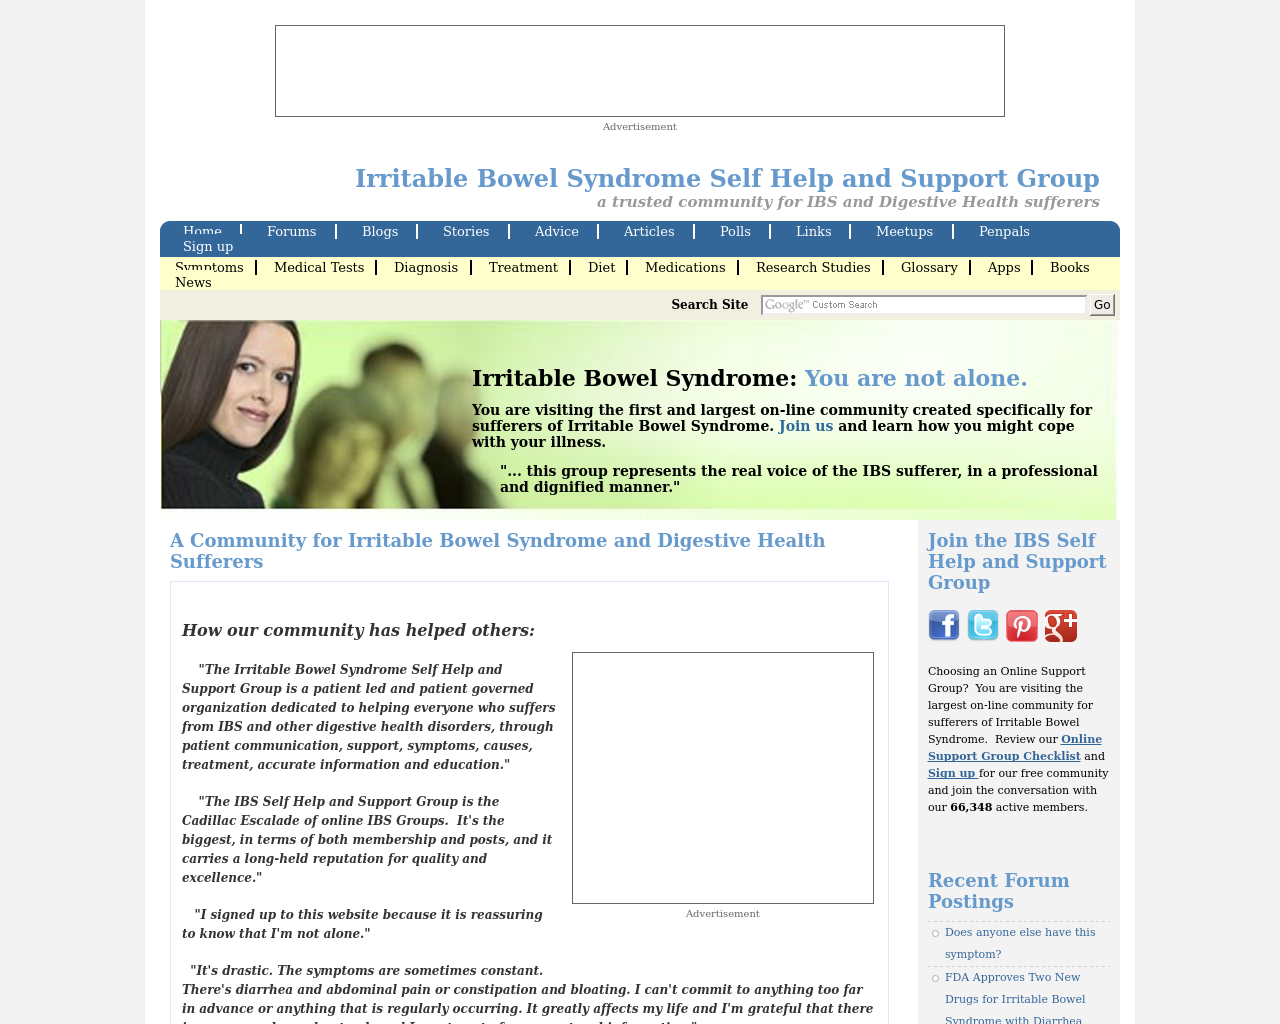 Irritable-Bowel-Syndrome-Self-Help-And-Support-Group-Advertising-Reviews-Pricing